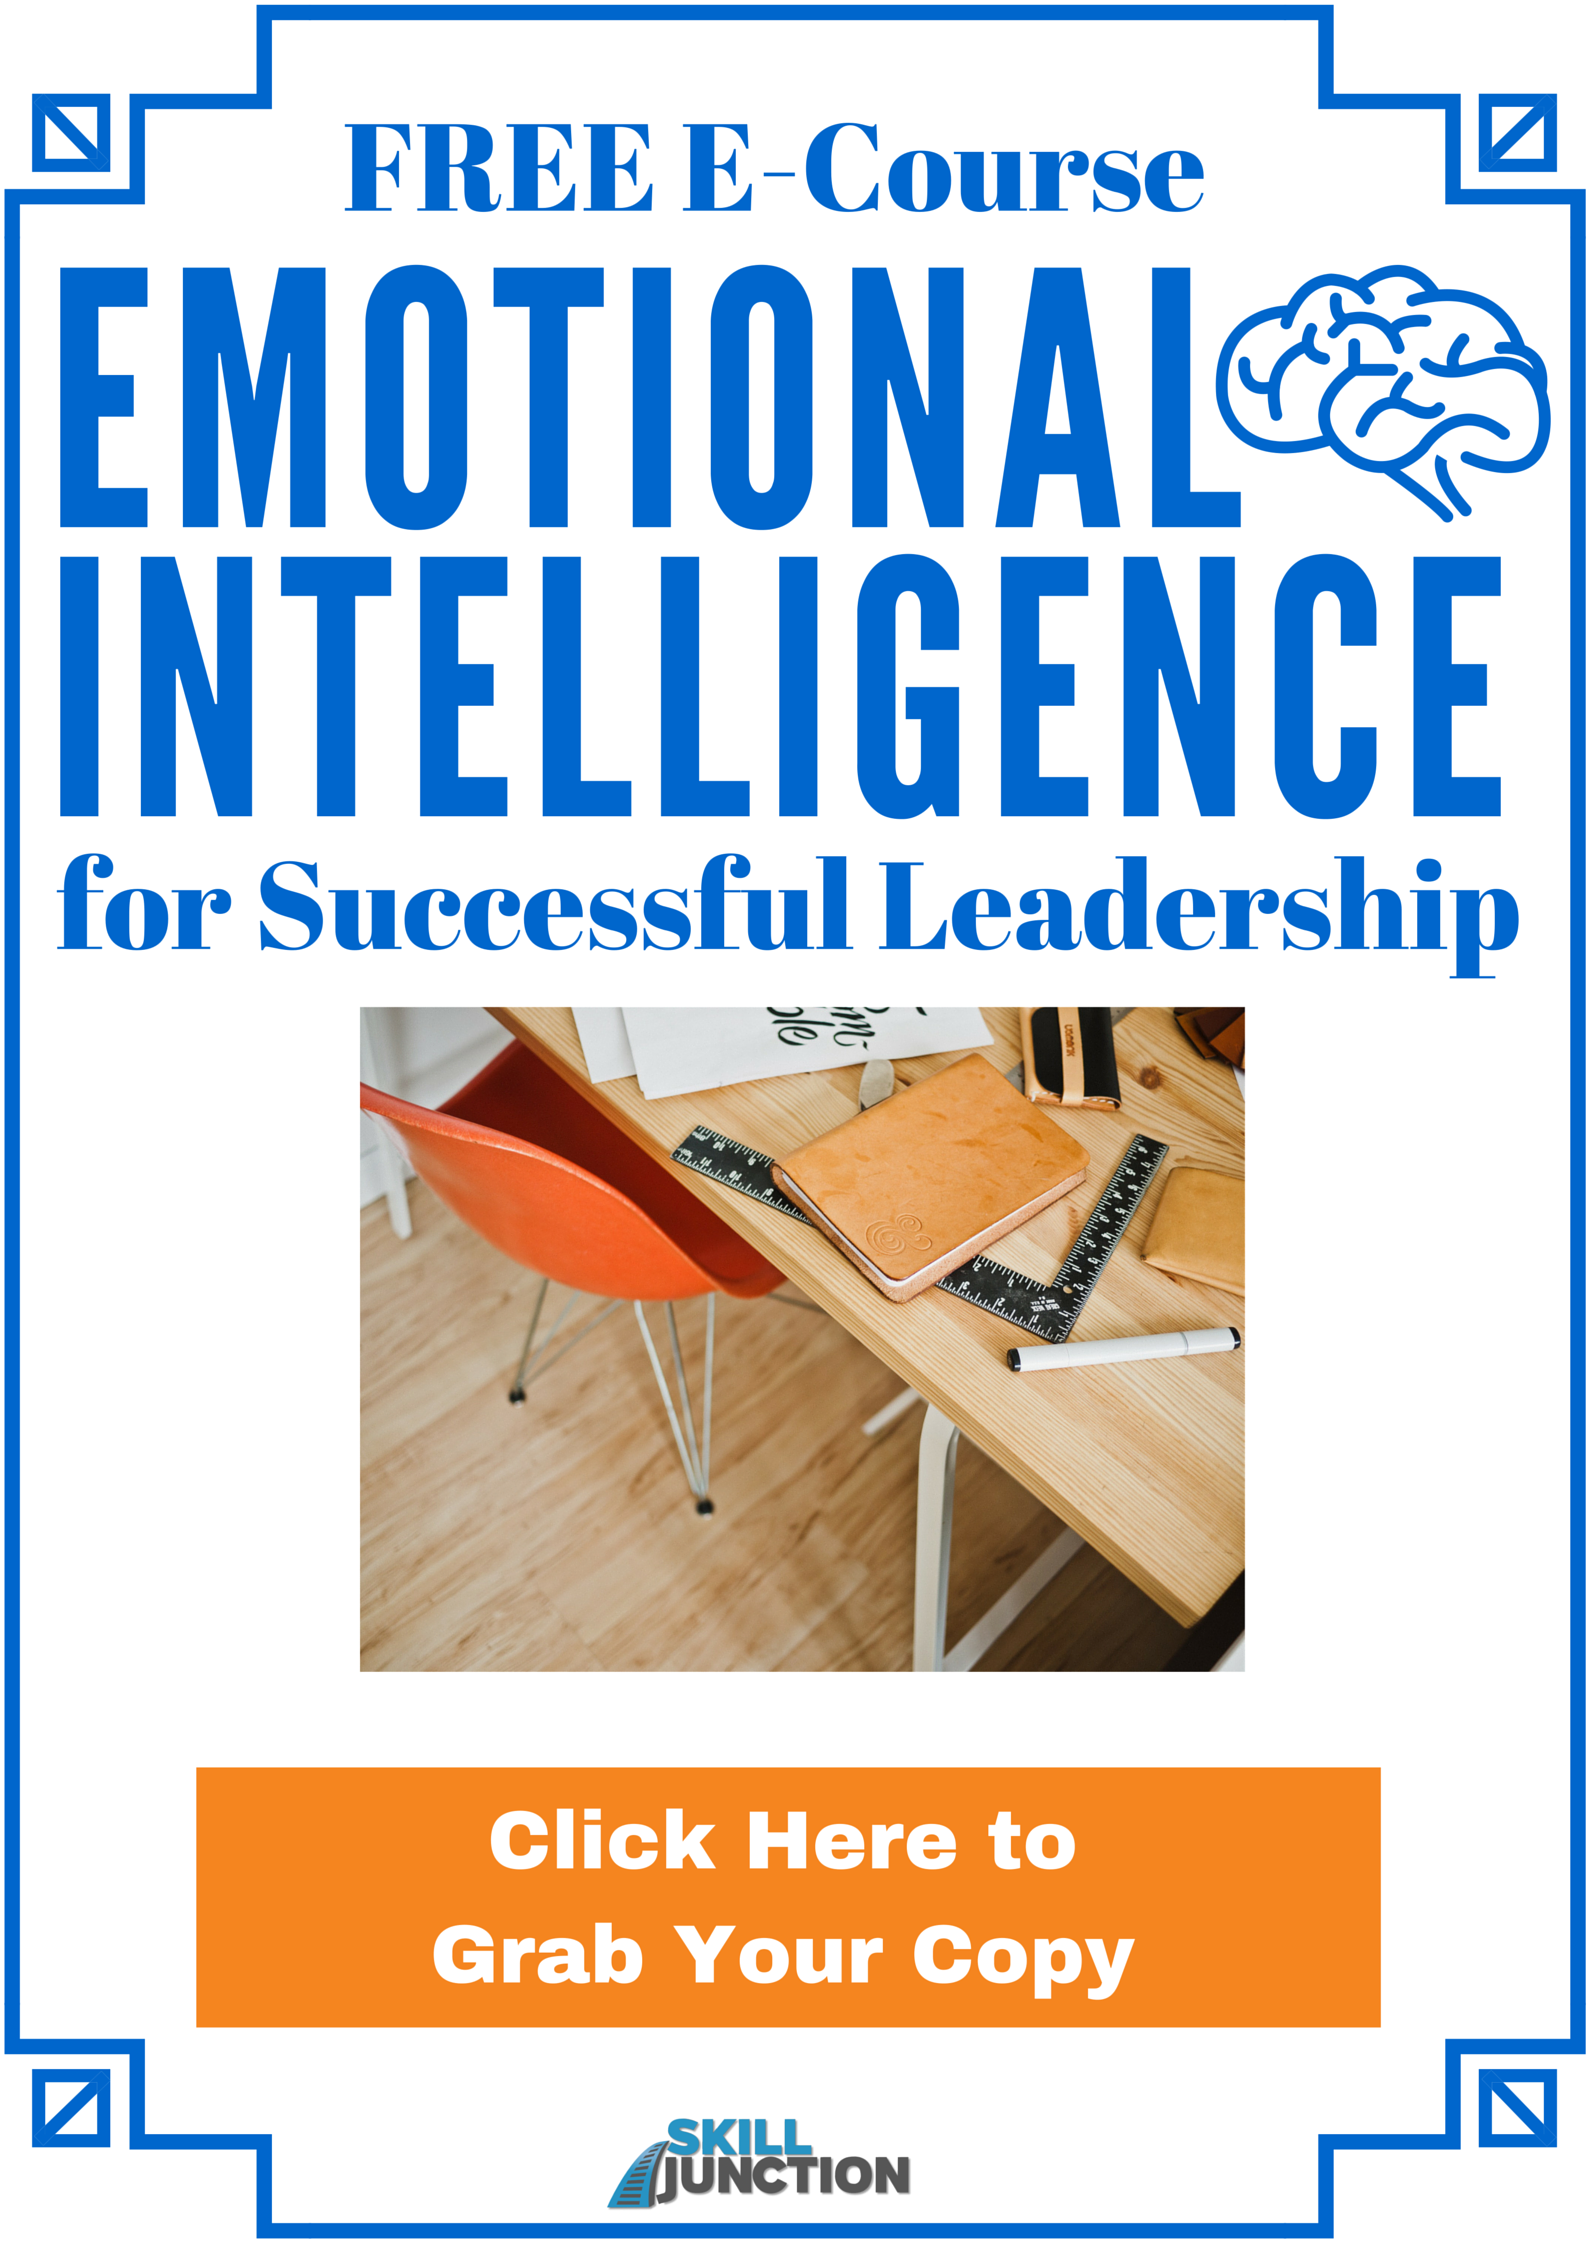 Emotional Intelligence Free Course CTA